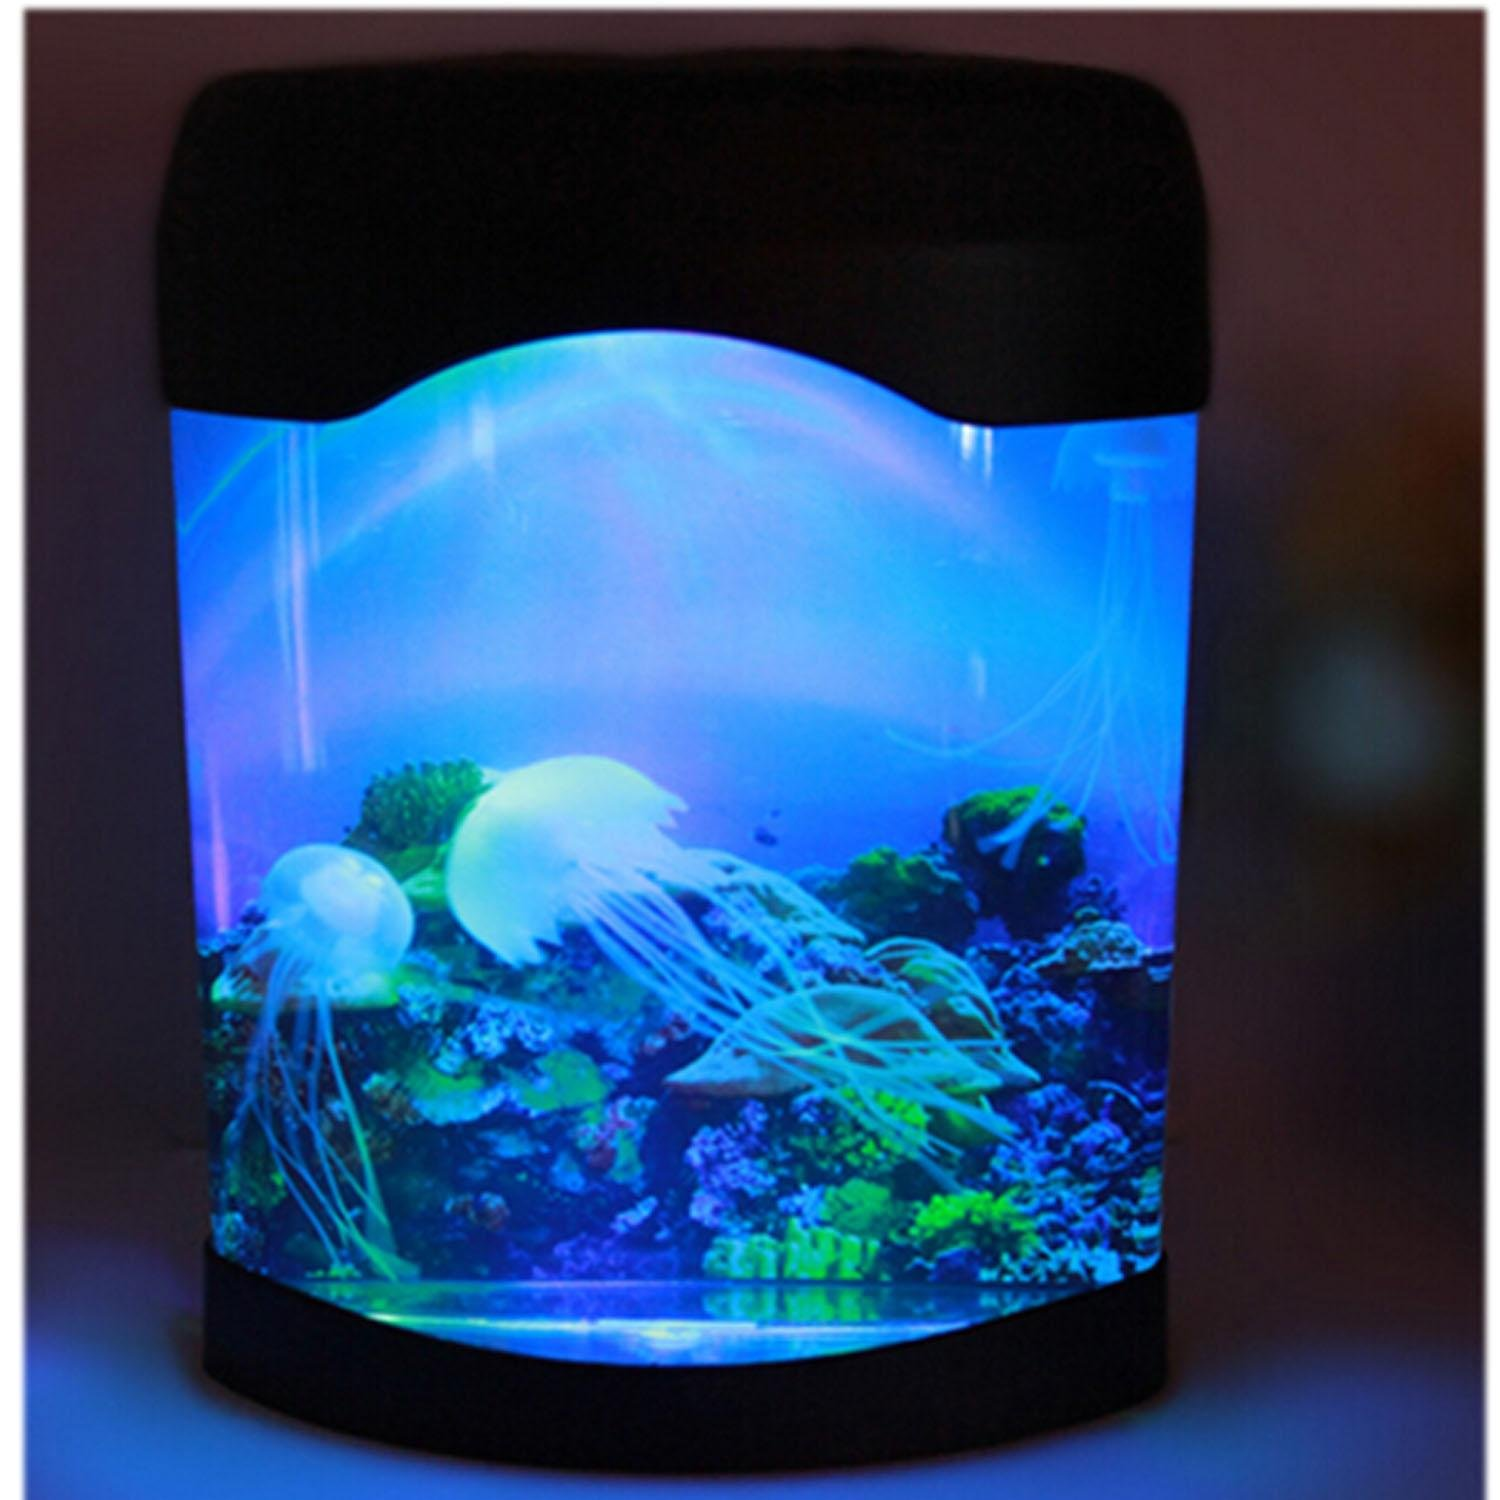 Gosearnovelty led artificial jellyfish aquarium lighting fish tank gosearnovelty led artificial jellyfish aquarium lighting fish tank night light lamp amazon kitchen home arubaitofo Image collections